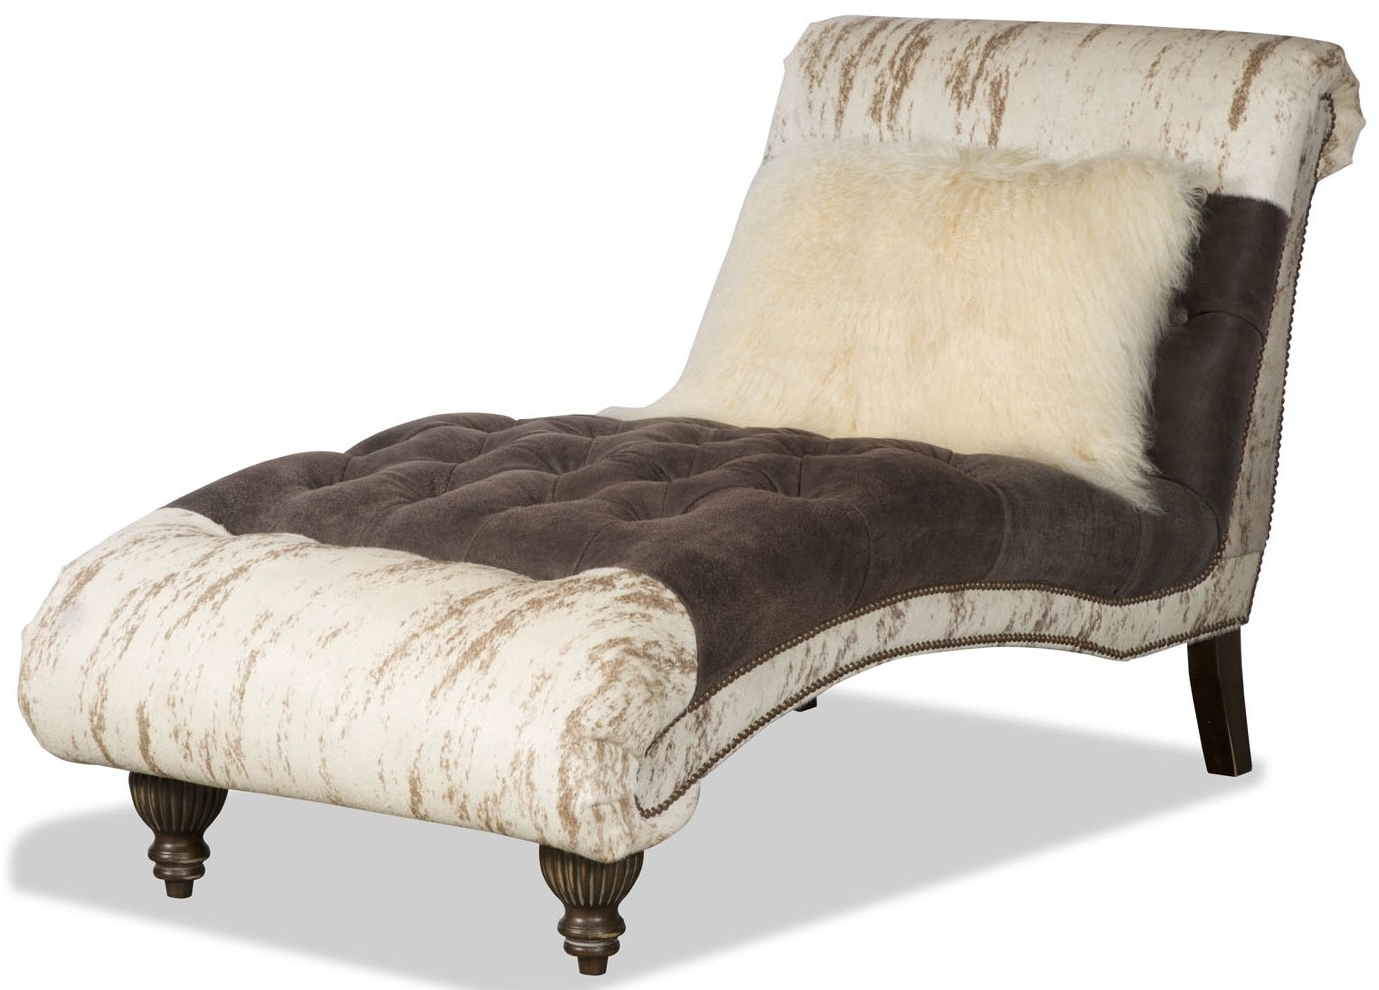 Animal Print Chaise In Favorite Chaise Benchs (View 2 of 15)